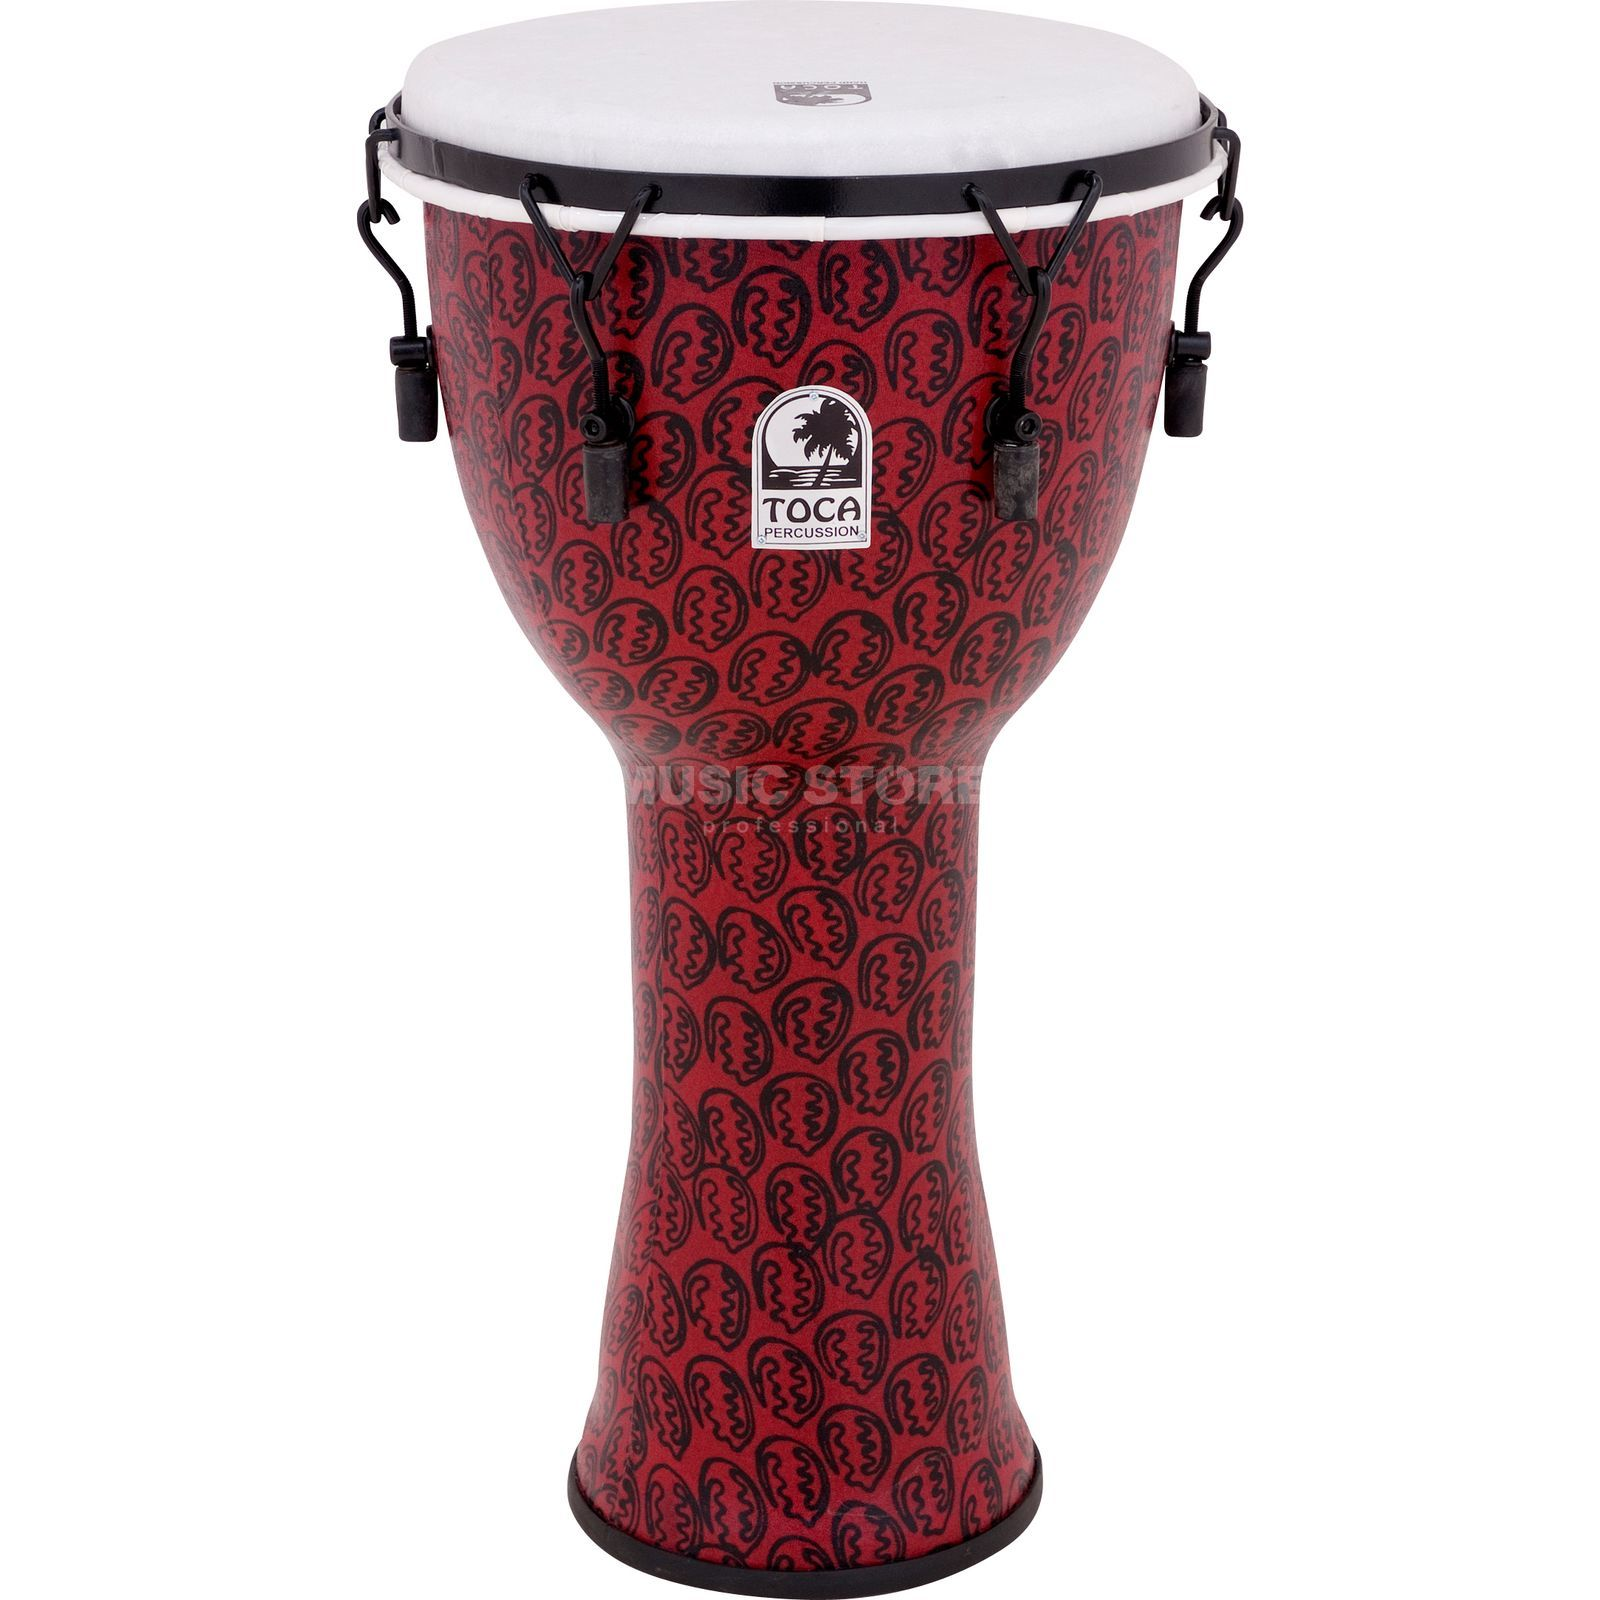 "Toca Percussion Freestyle Djembe TF2DM-14RM, 14"", Red Mask Produktbillede"